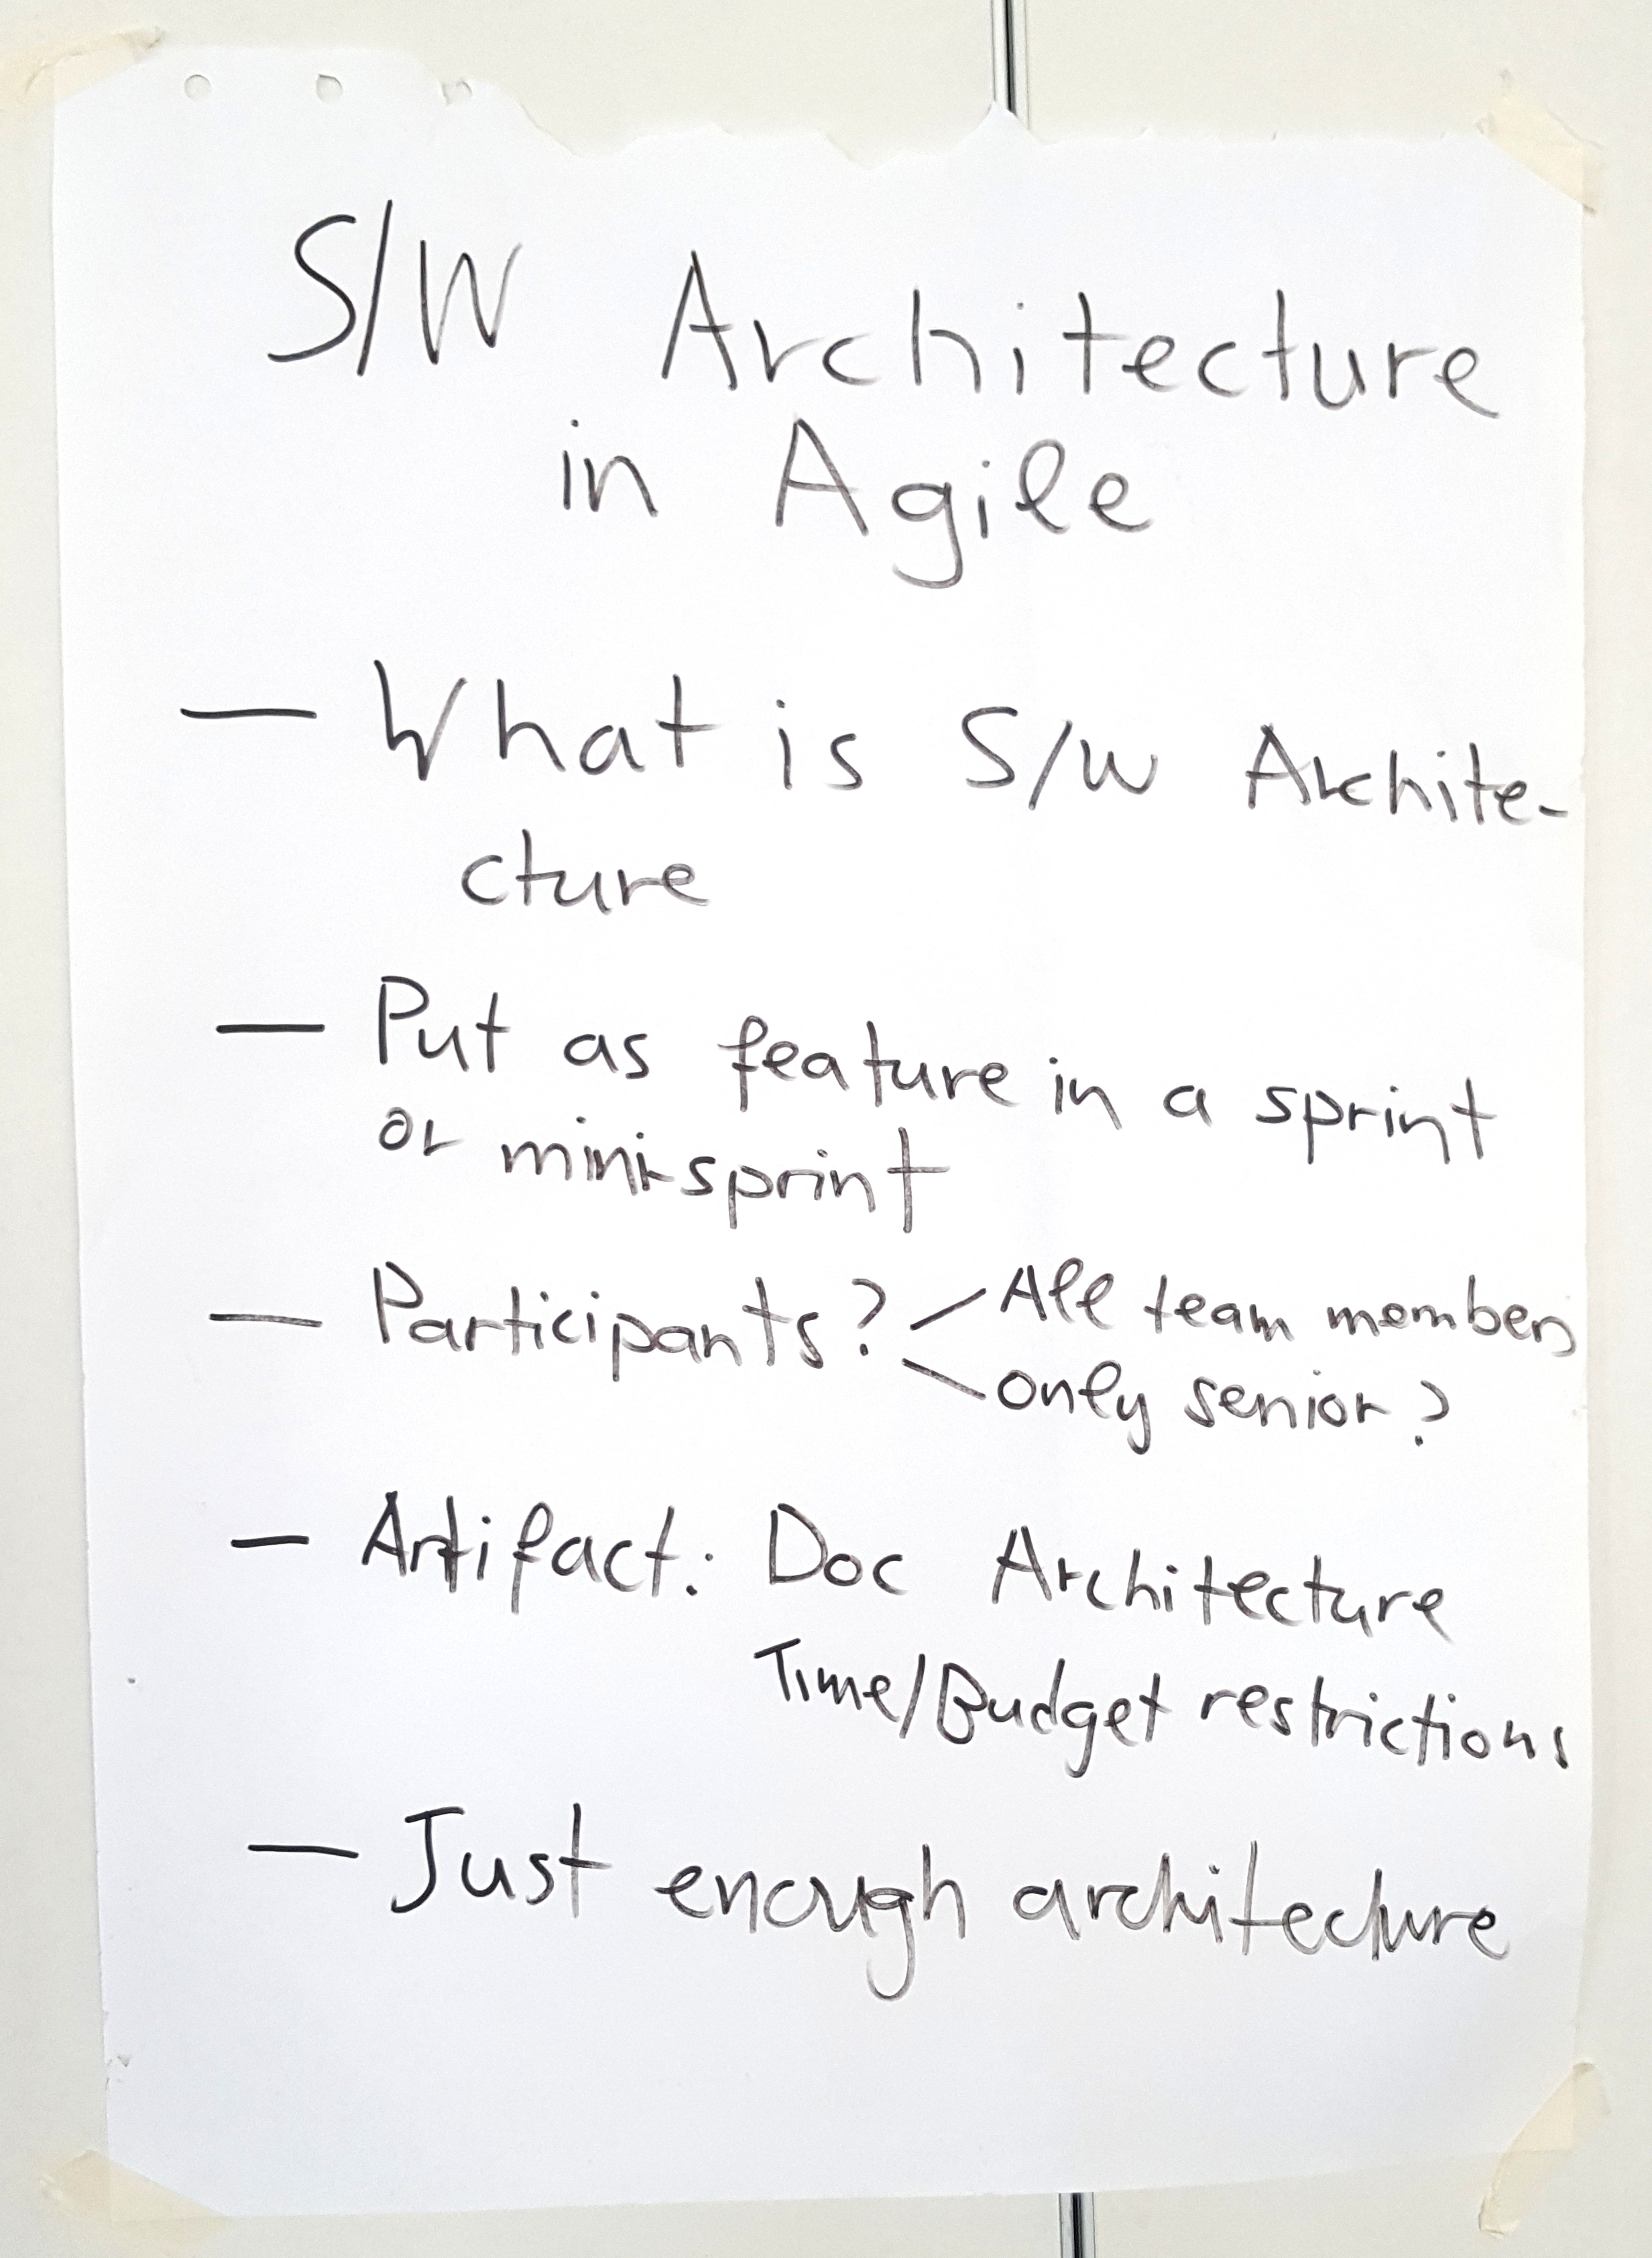 Harvest - Software architecture in an agile world